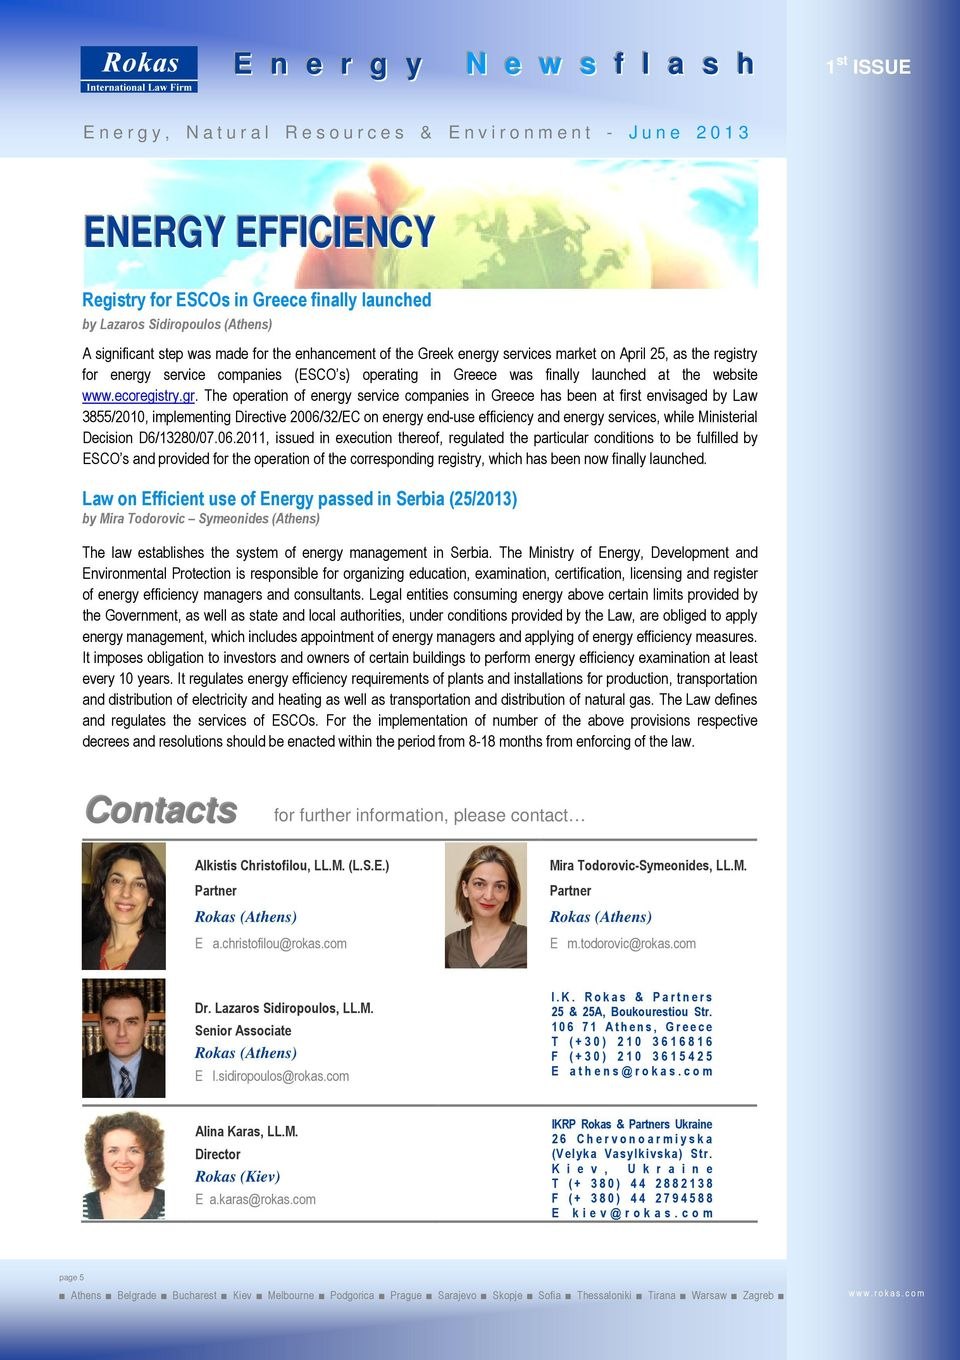 The operation of energy service companies in Greece has been at first envisaged by Law 3855/2010, implementing Directive 2006/32/EC on energy end-use efficiency and energy services, while Ministerial